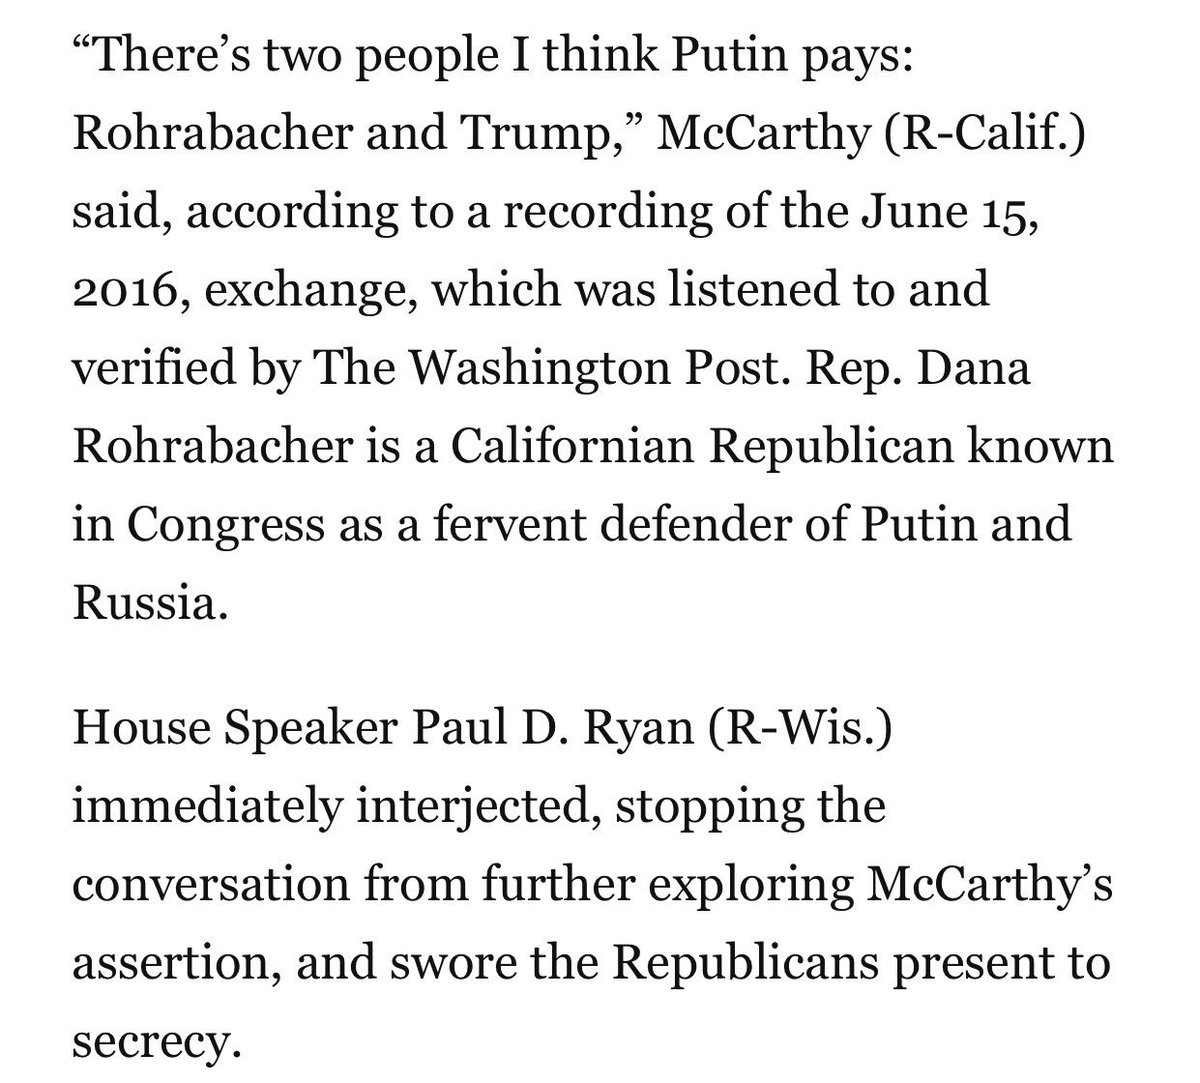 """Here's the @washingtonpost quote from McCarthy and Ryan. This is supremely dangerous to our national security and flat out unamerican. And note that Paul Ryan """"swore the Republicans present to secrecy.""""  Let's call this what it is - traitorous. https://t.co/fJG81Y129Y https://t.co/CgR4IyMQJK"""